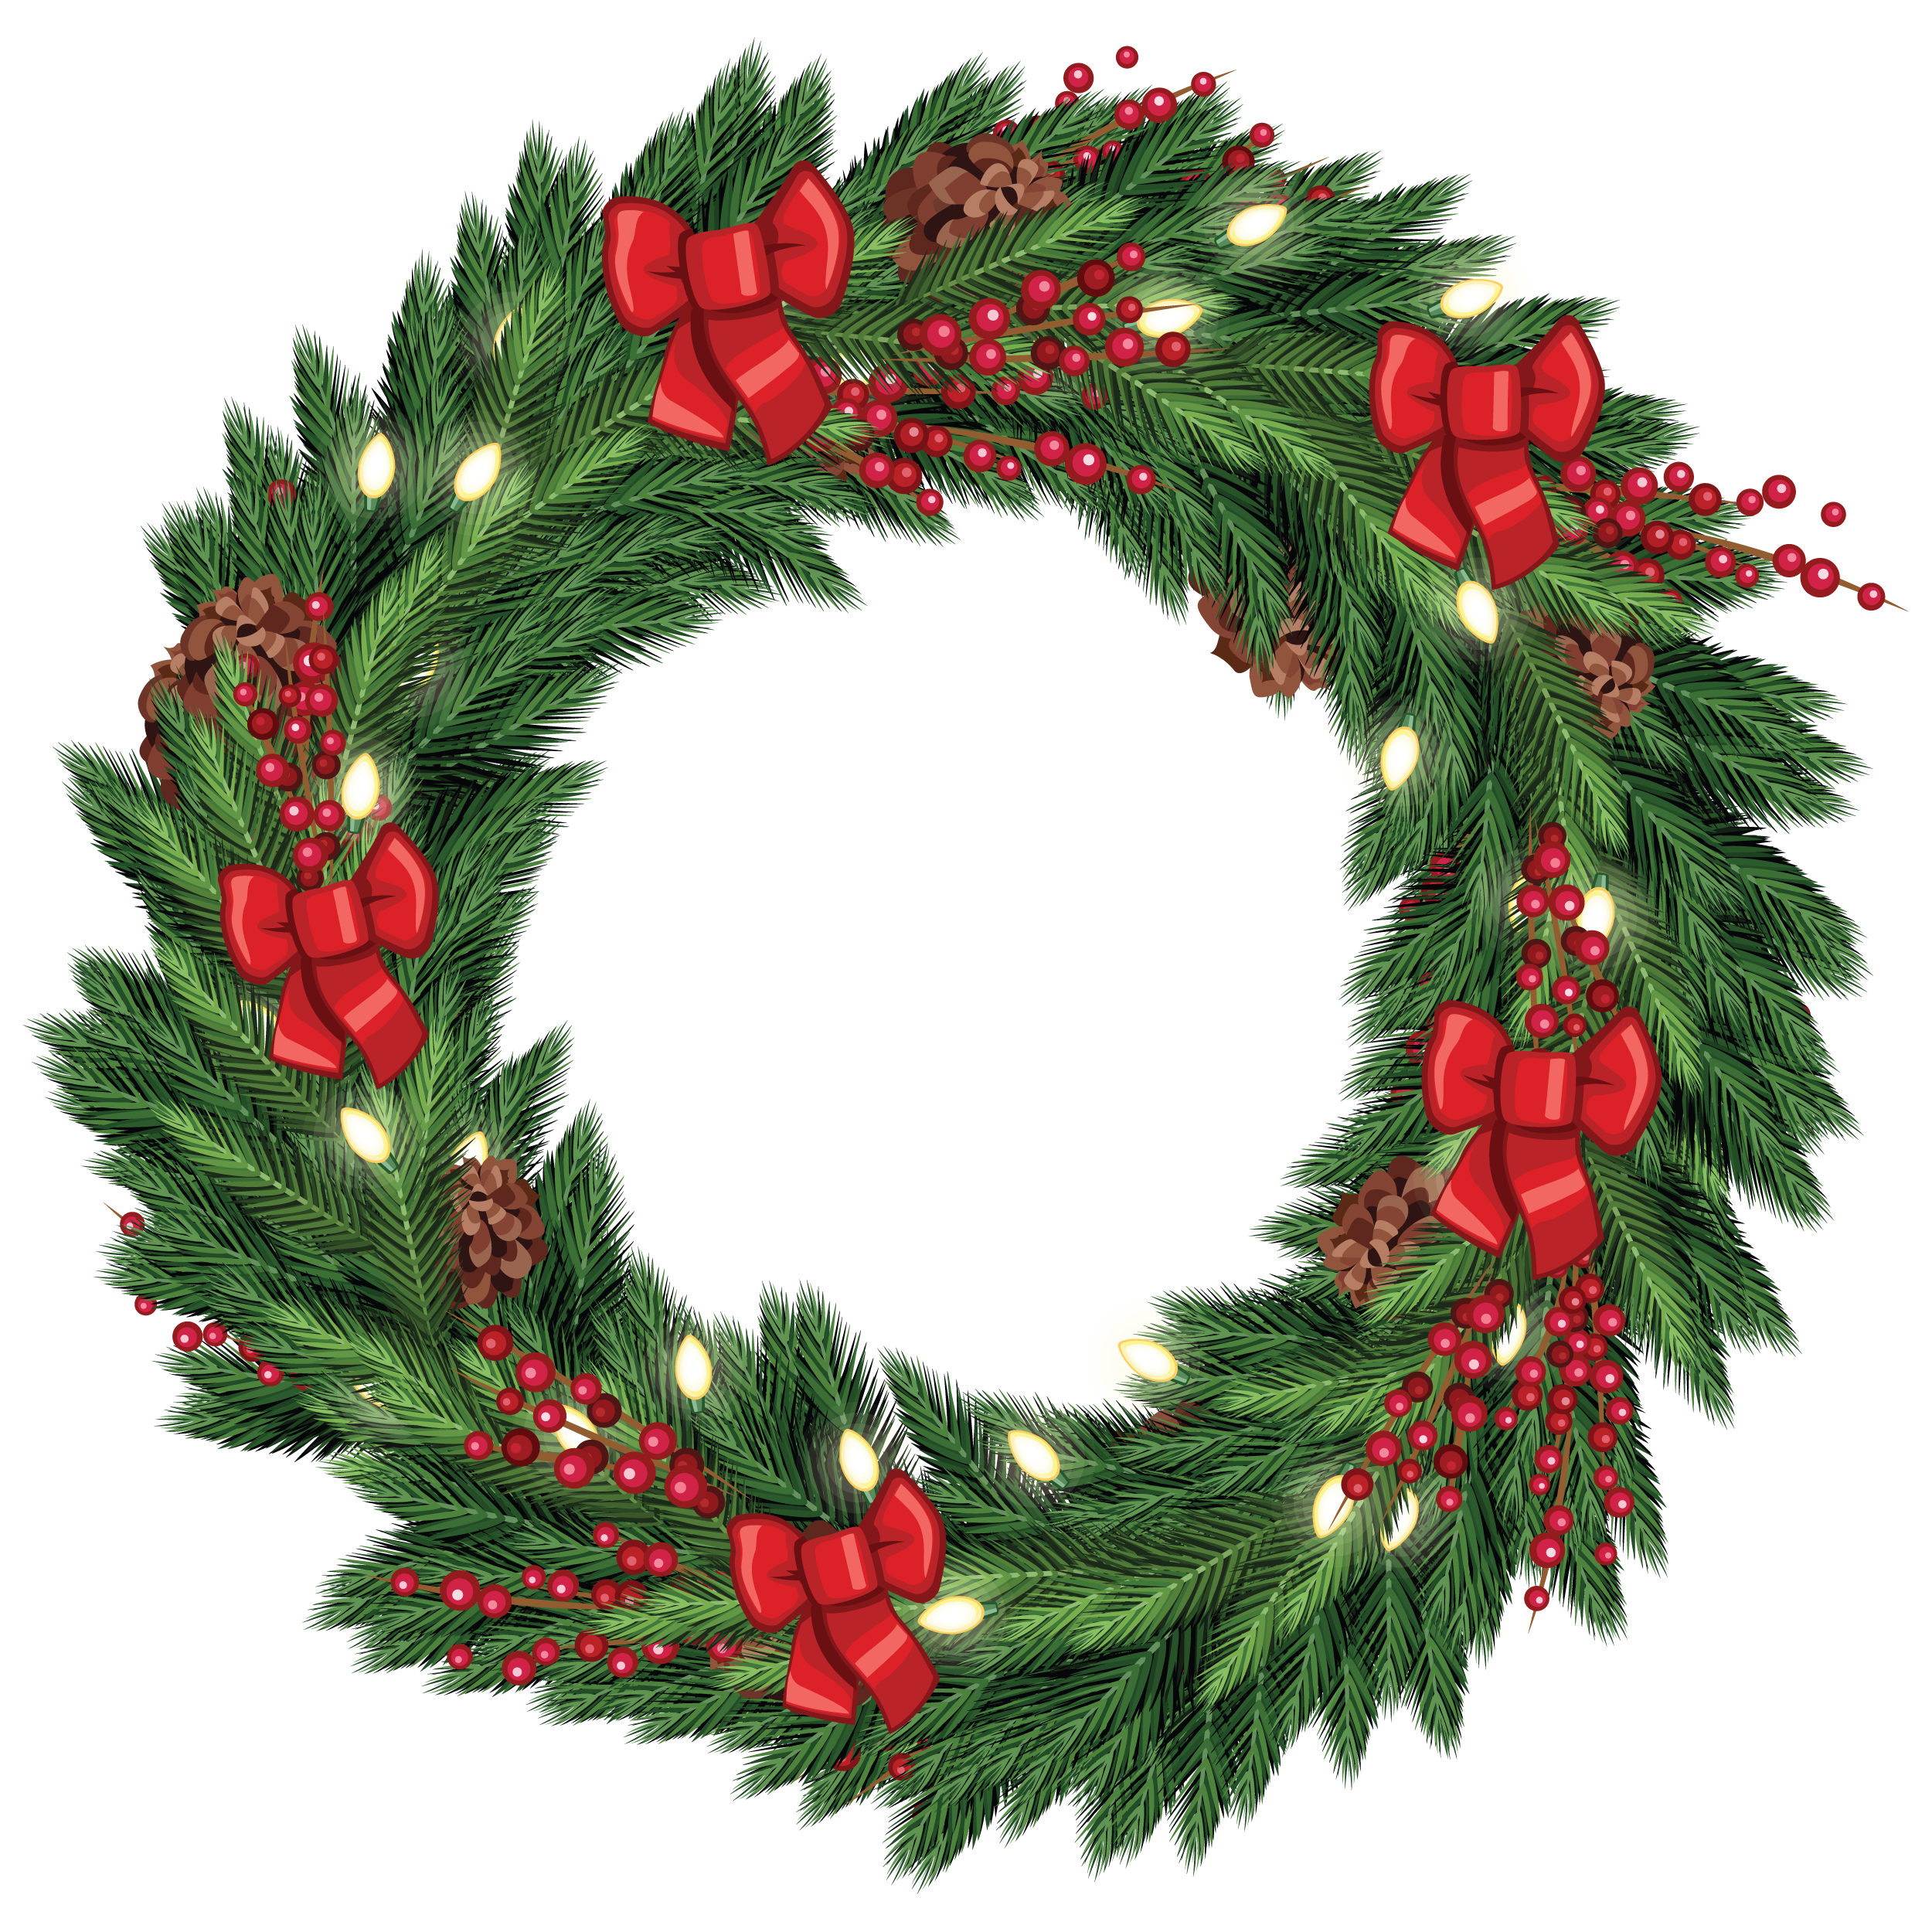 Christmas wreath transparent clipart svg transparent library Christmas wreath png transparent clipart images gallery for free ... svg transparent library